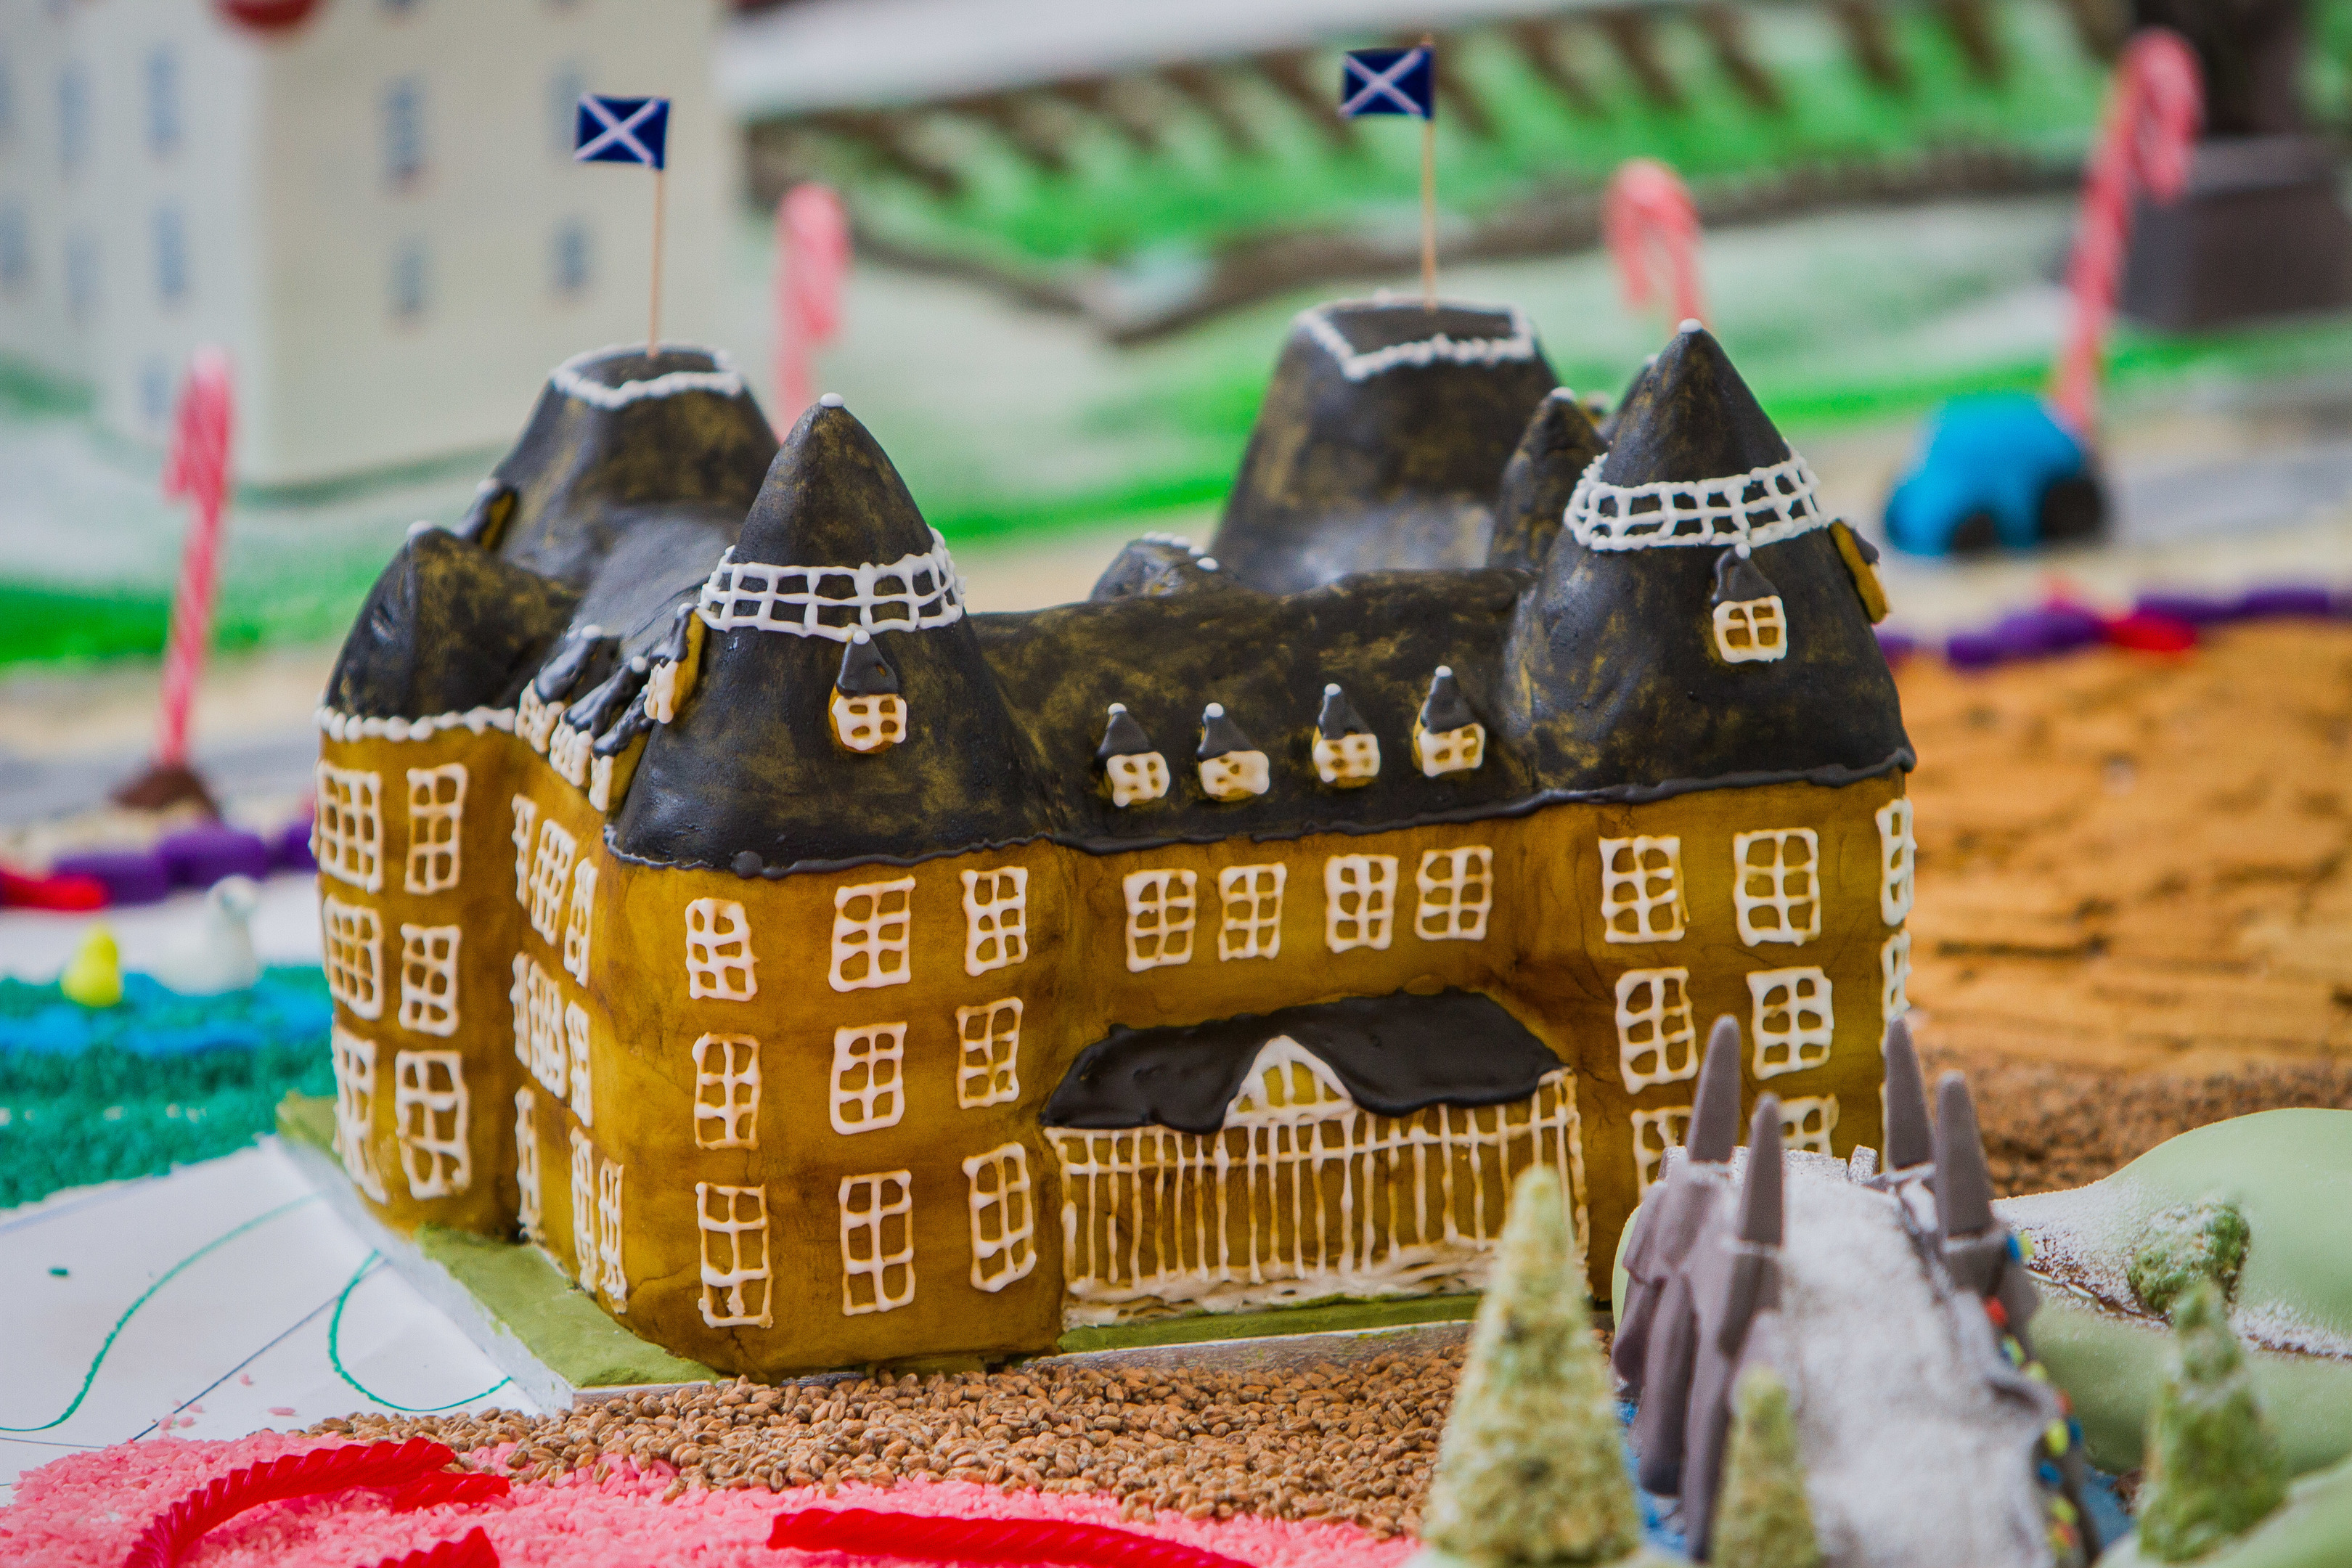 The Atholl Palace Hotel in a cake form.